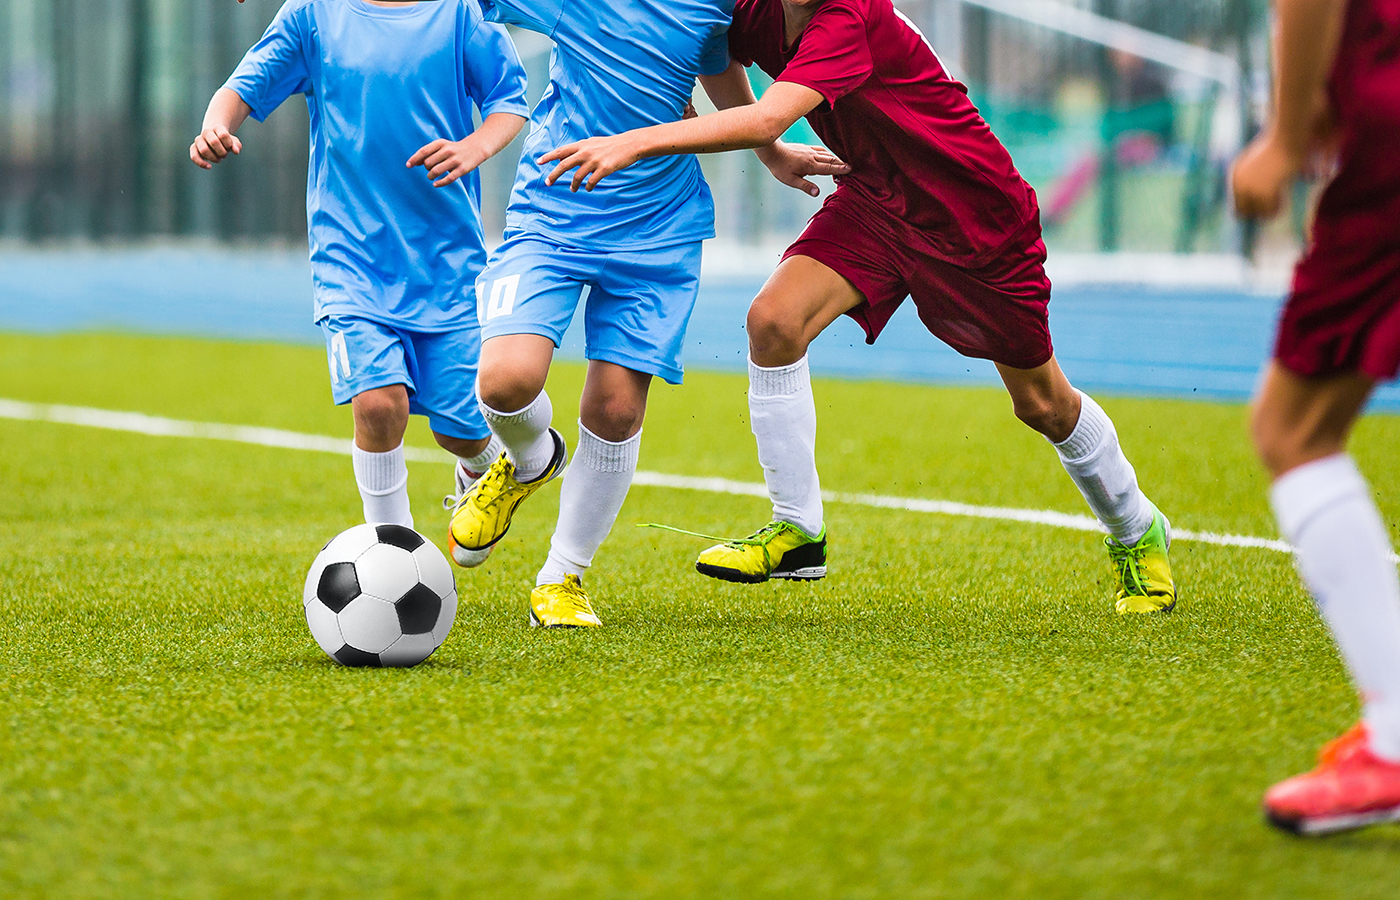 Rec Soccer League Roundup: Know What's Available